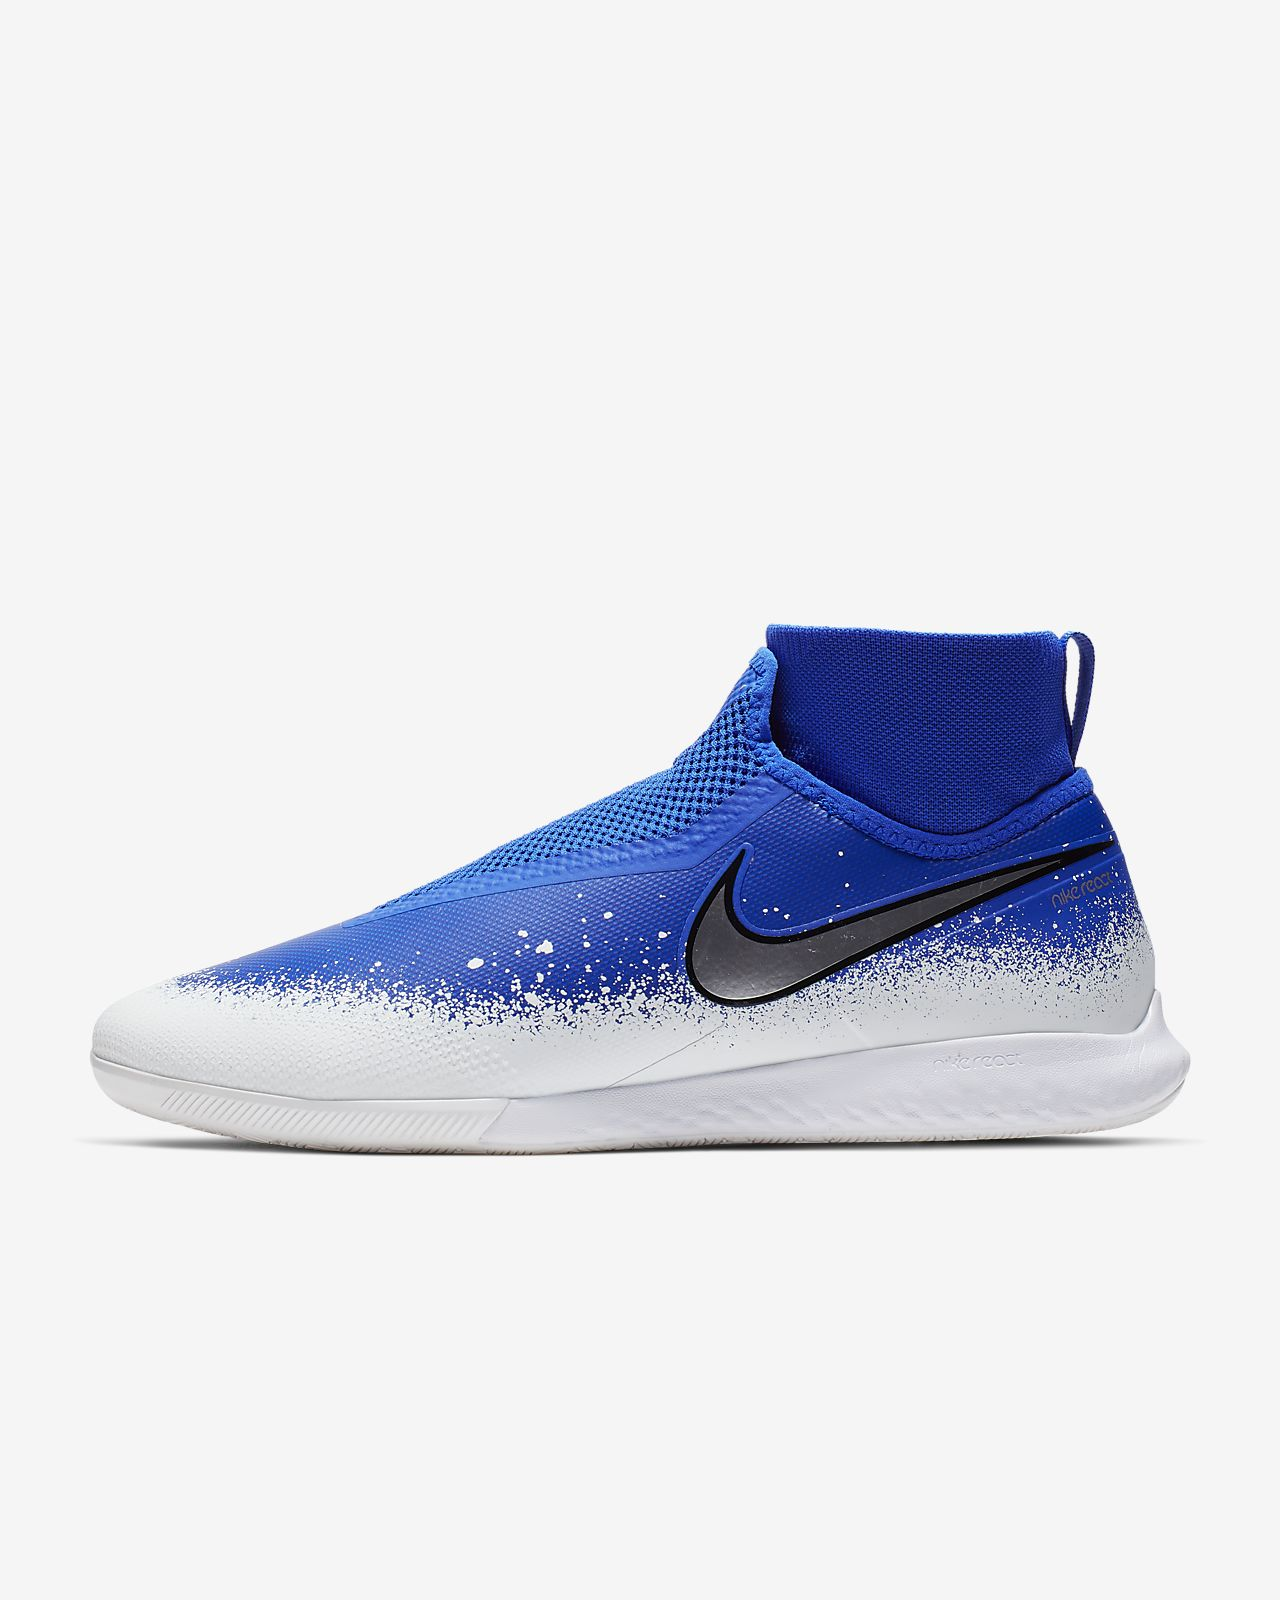 Chaussure de football en salle à crampons Nike React Phantom Vision Pro Dynamic Fit IC